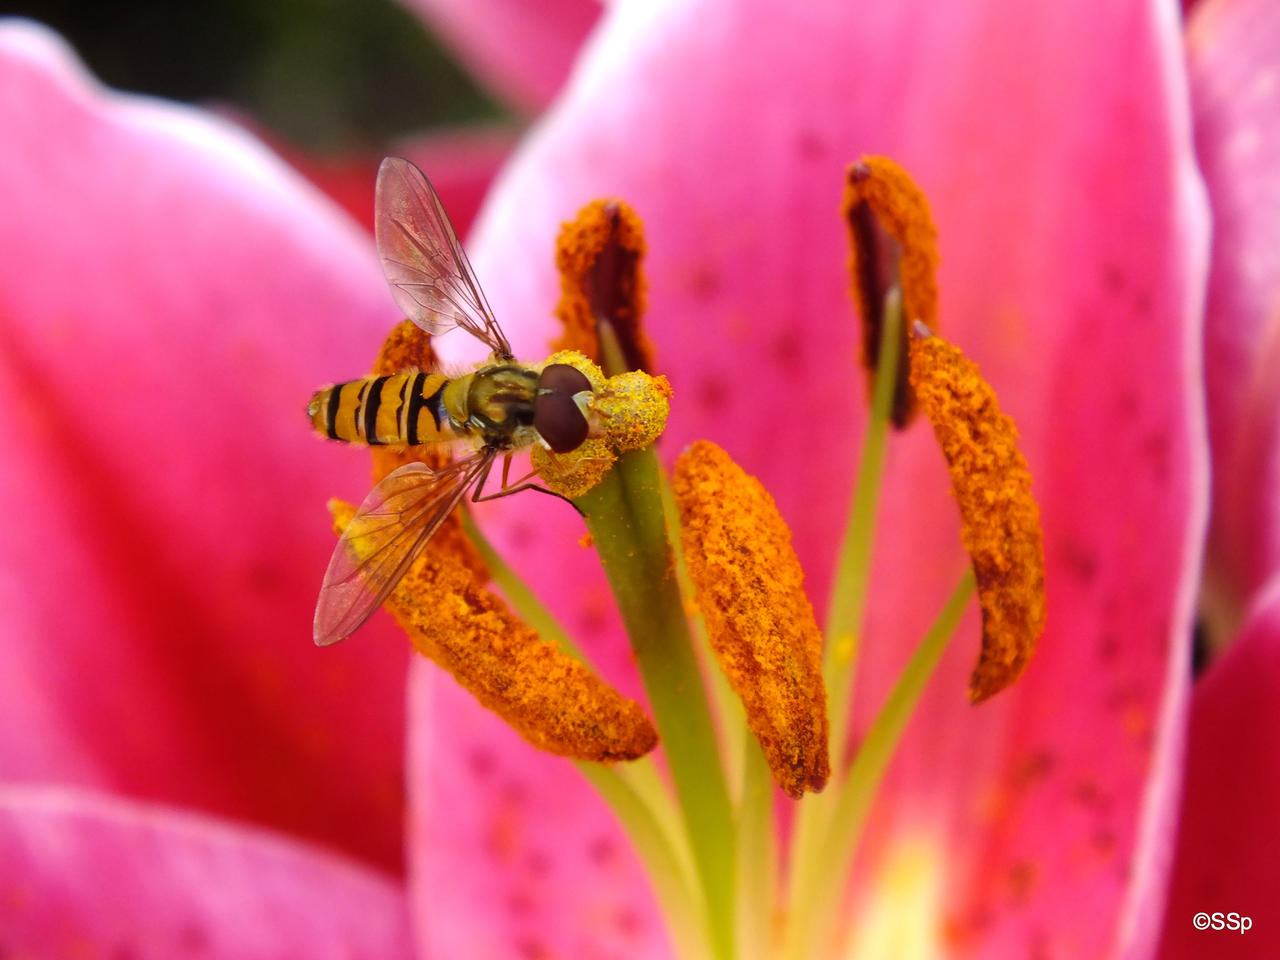 Hoverfly by Lionpelt-66